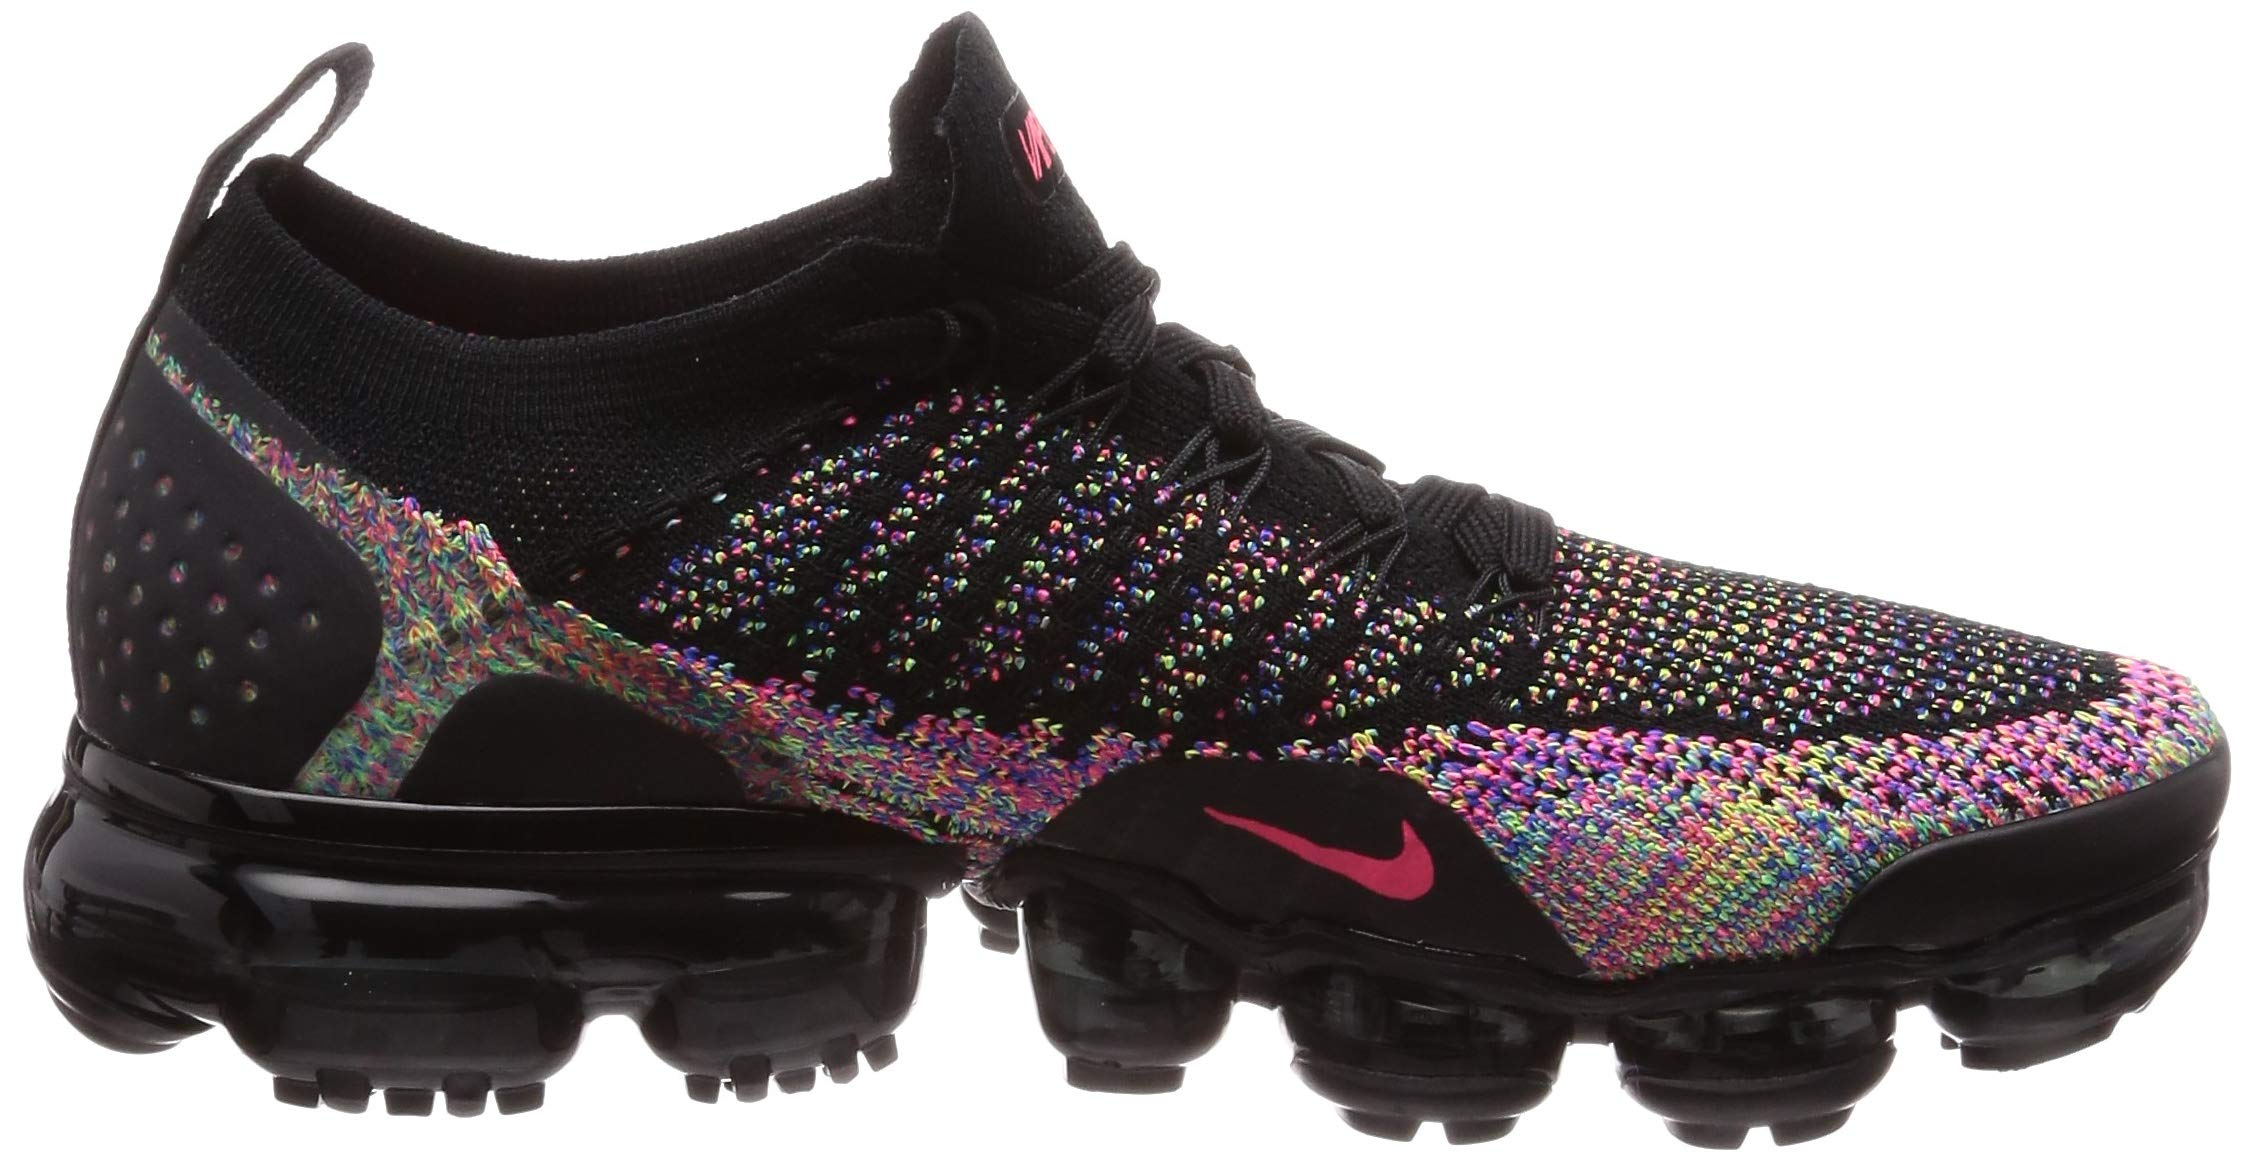 710r1pO sJL - Nike Women's W Air Vapormax Flyknit 2 Track & Field Shoes